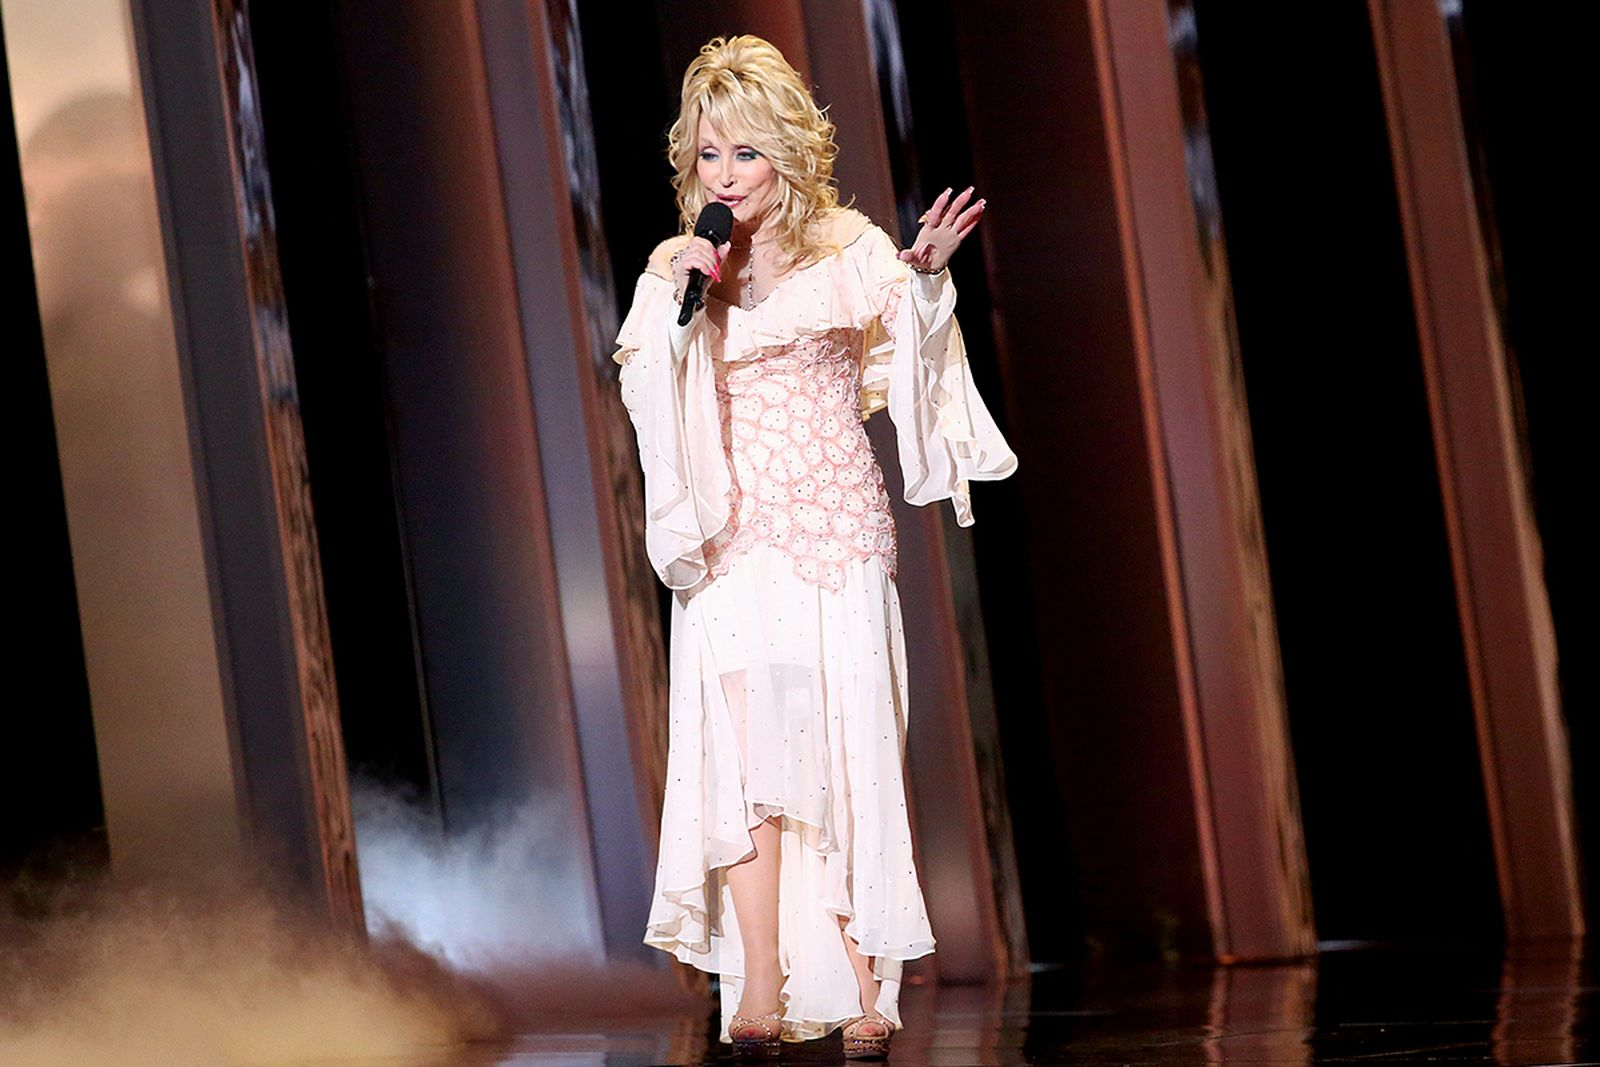 Dolly Parton on stage